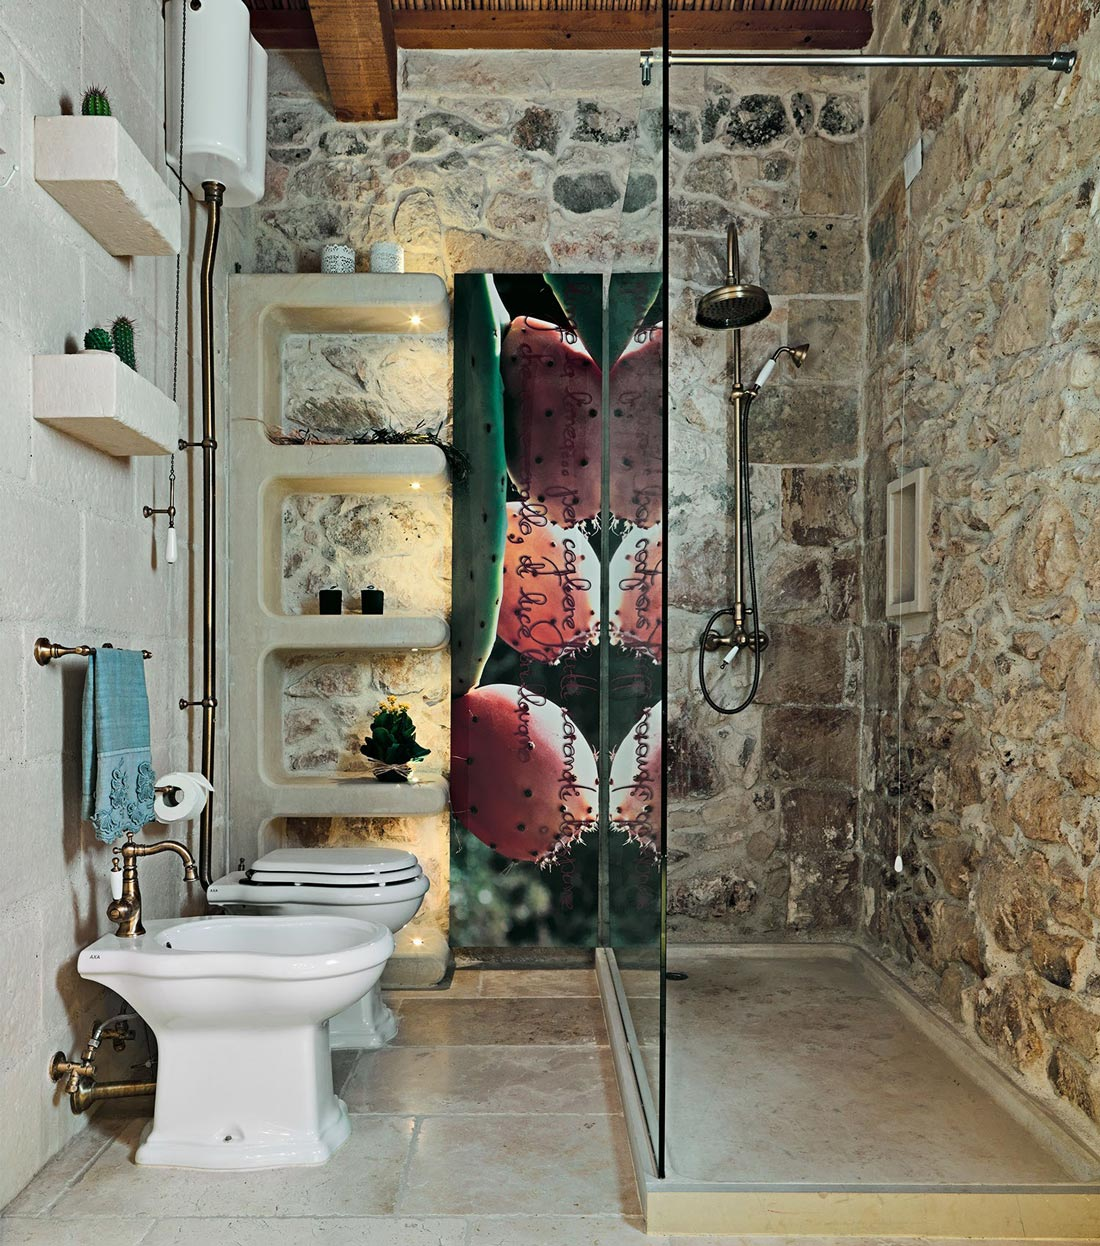 Glass Shower, Shelves, Relais Masseria Capasa Hotel in Martano, Italy